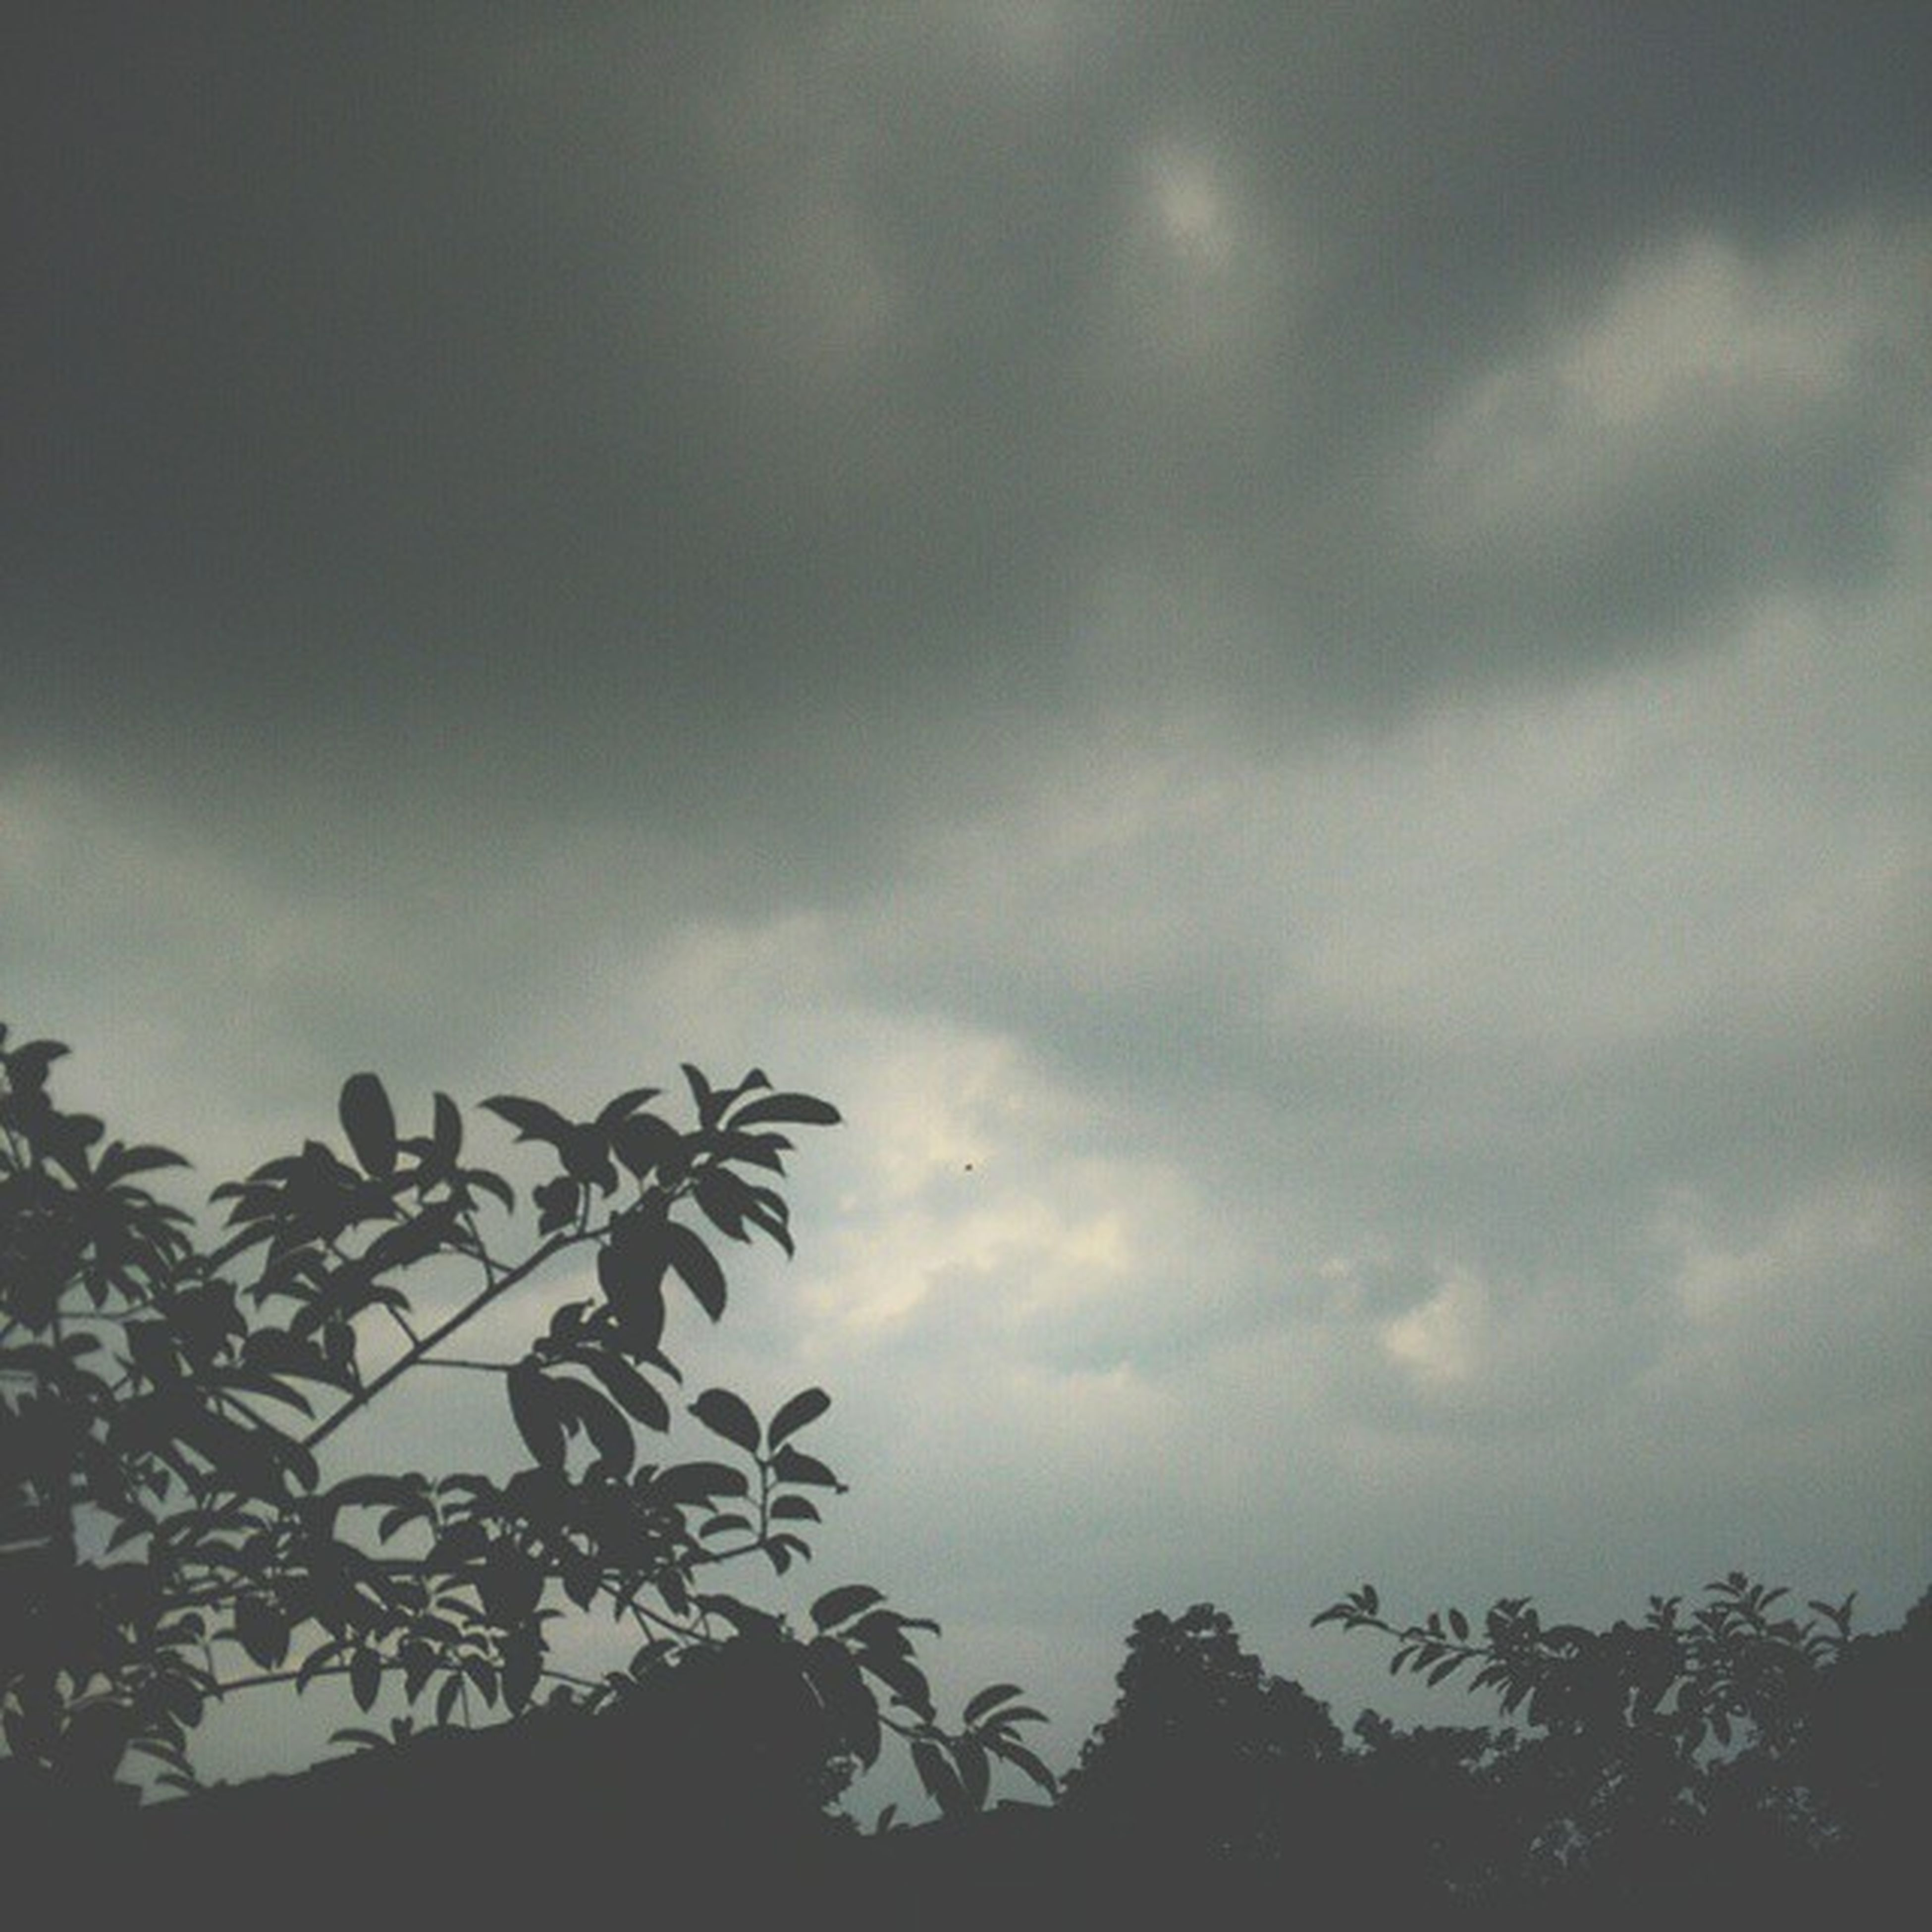 sky, low angle view, cloud - sky, silhouette, tree, cloudy, tranquility, nature, beauty in nature, overcast, weather, growth, scenics, cloud, tranquil scene, dusk, branch, outdoors, high section, no people